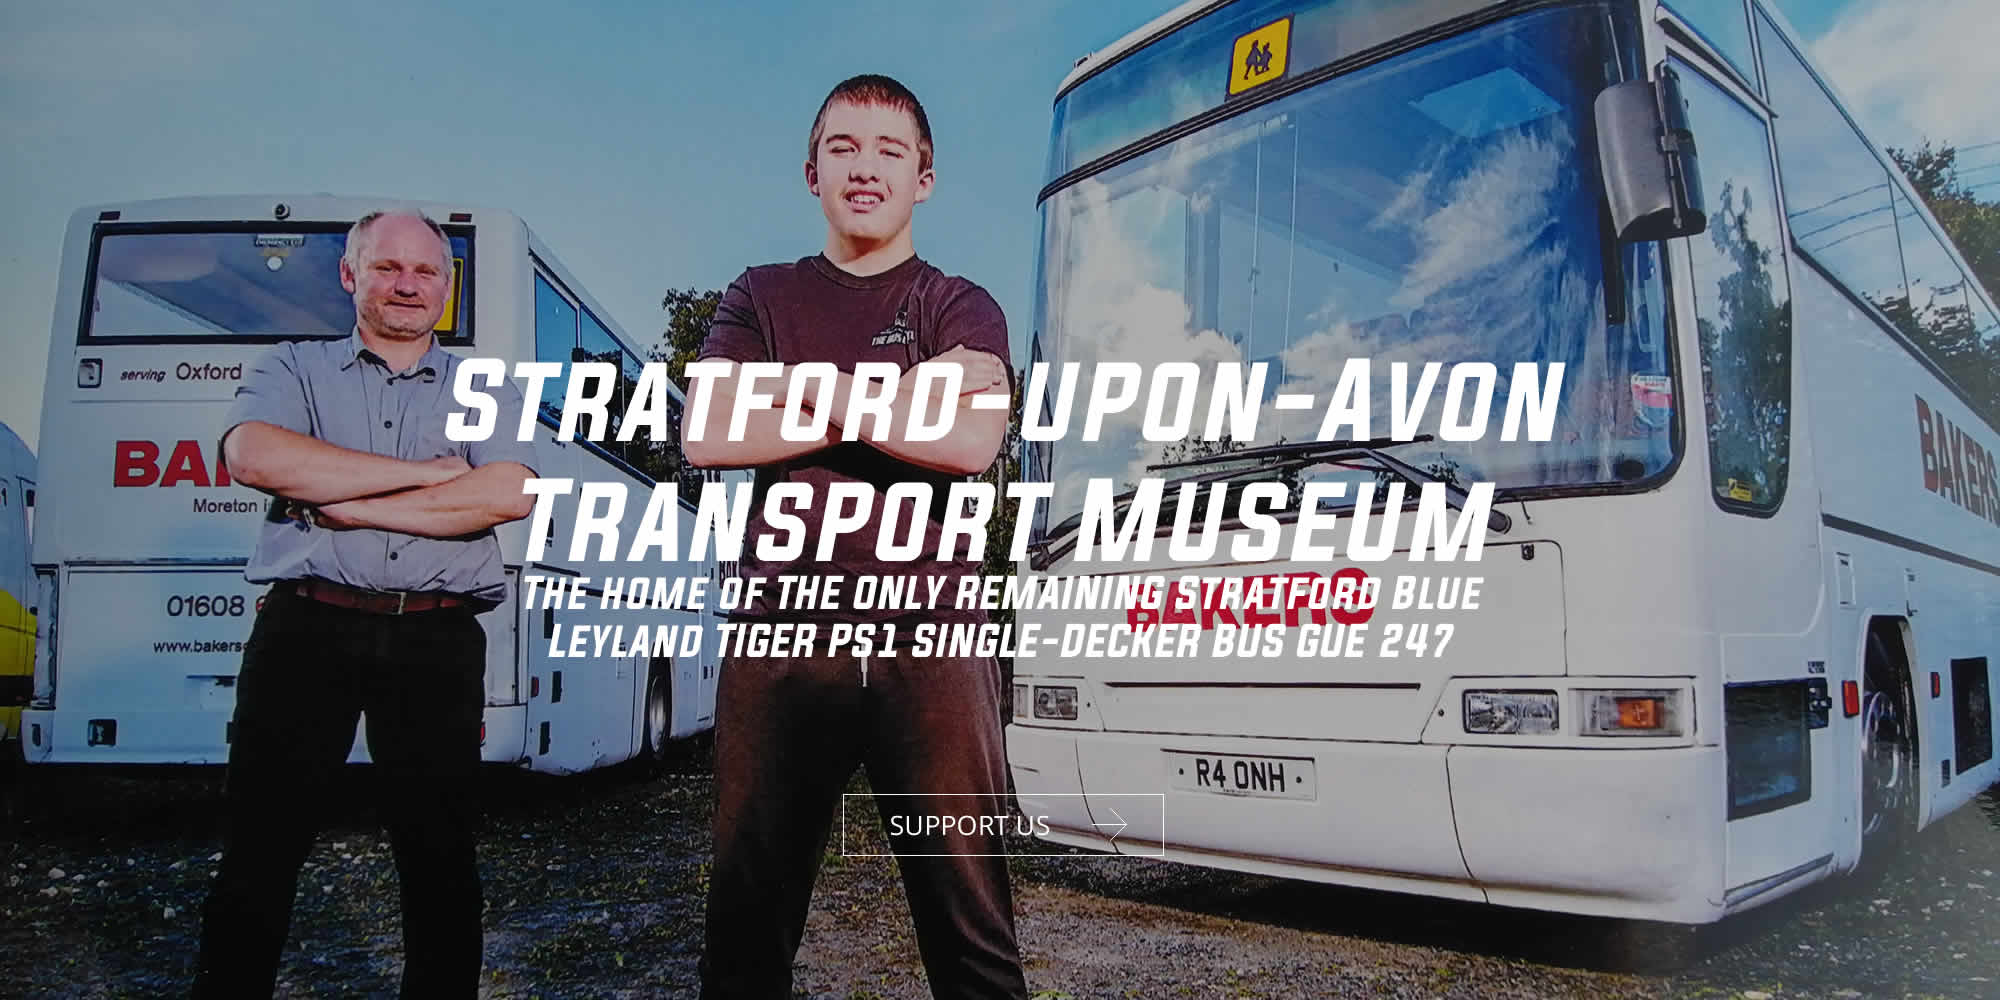 Stratford-upon-Avon Transport Museum - The home of the only remaining Stratford Blue Tiger Bus